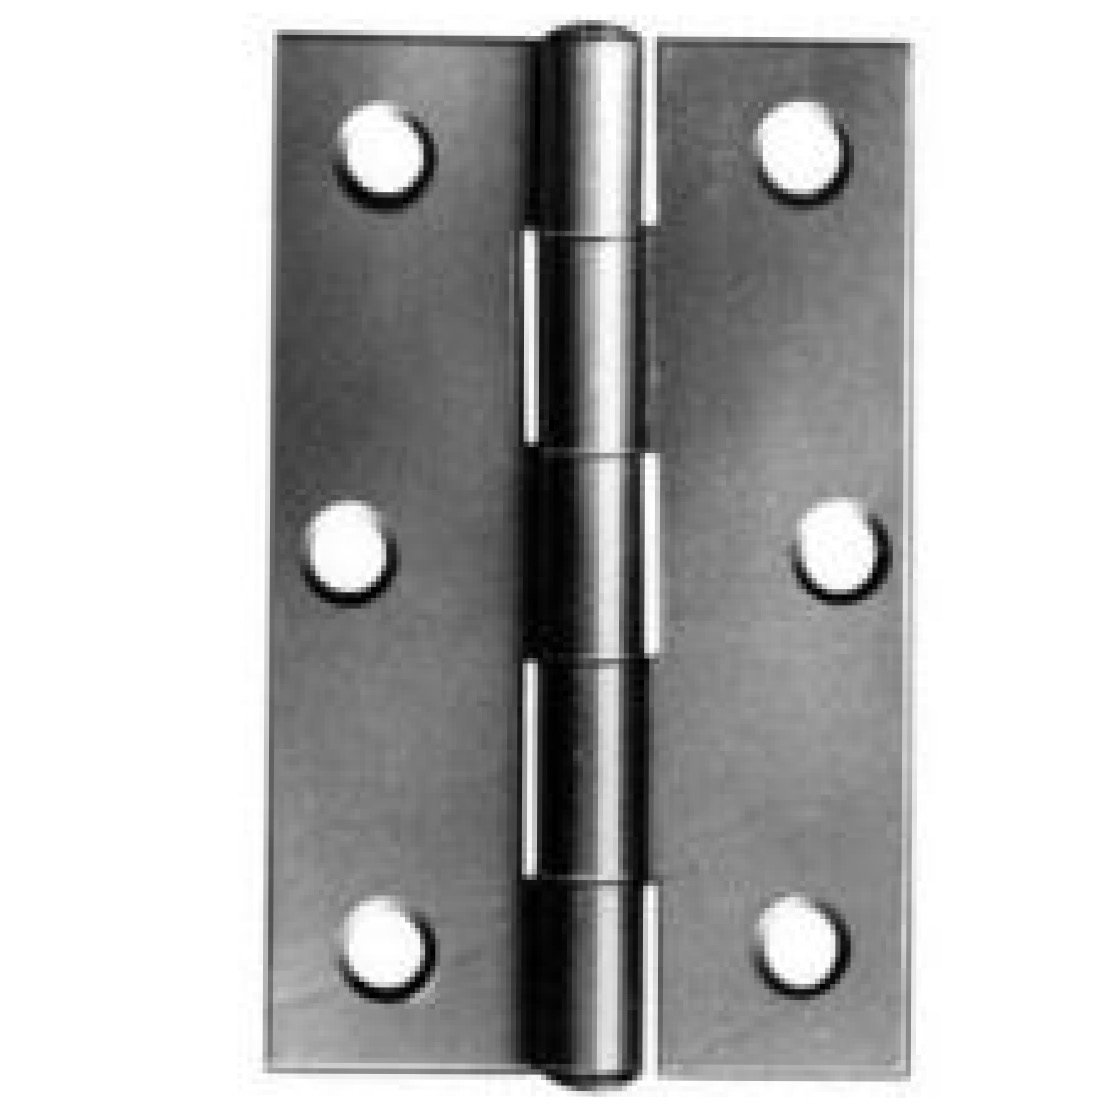 38mm 1838 Steel Butt Hinges - BZP